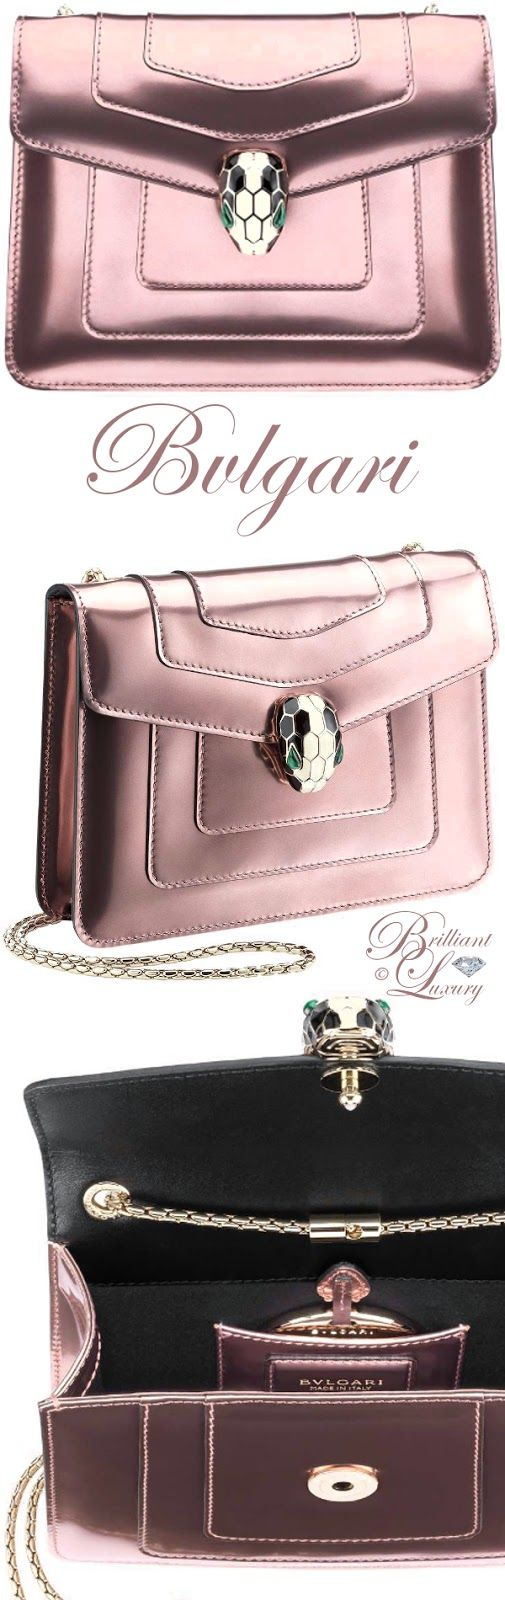 Brilliant Luxury ♦ Bvlgari Serpenti Forever brushed metallic calf leather bag with snake head closure